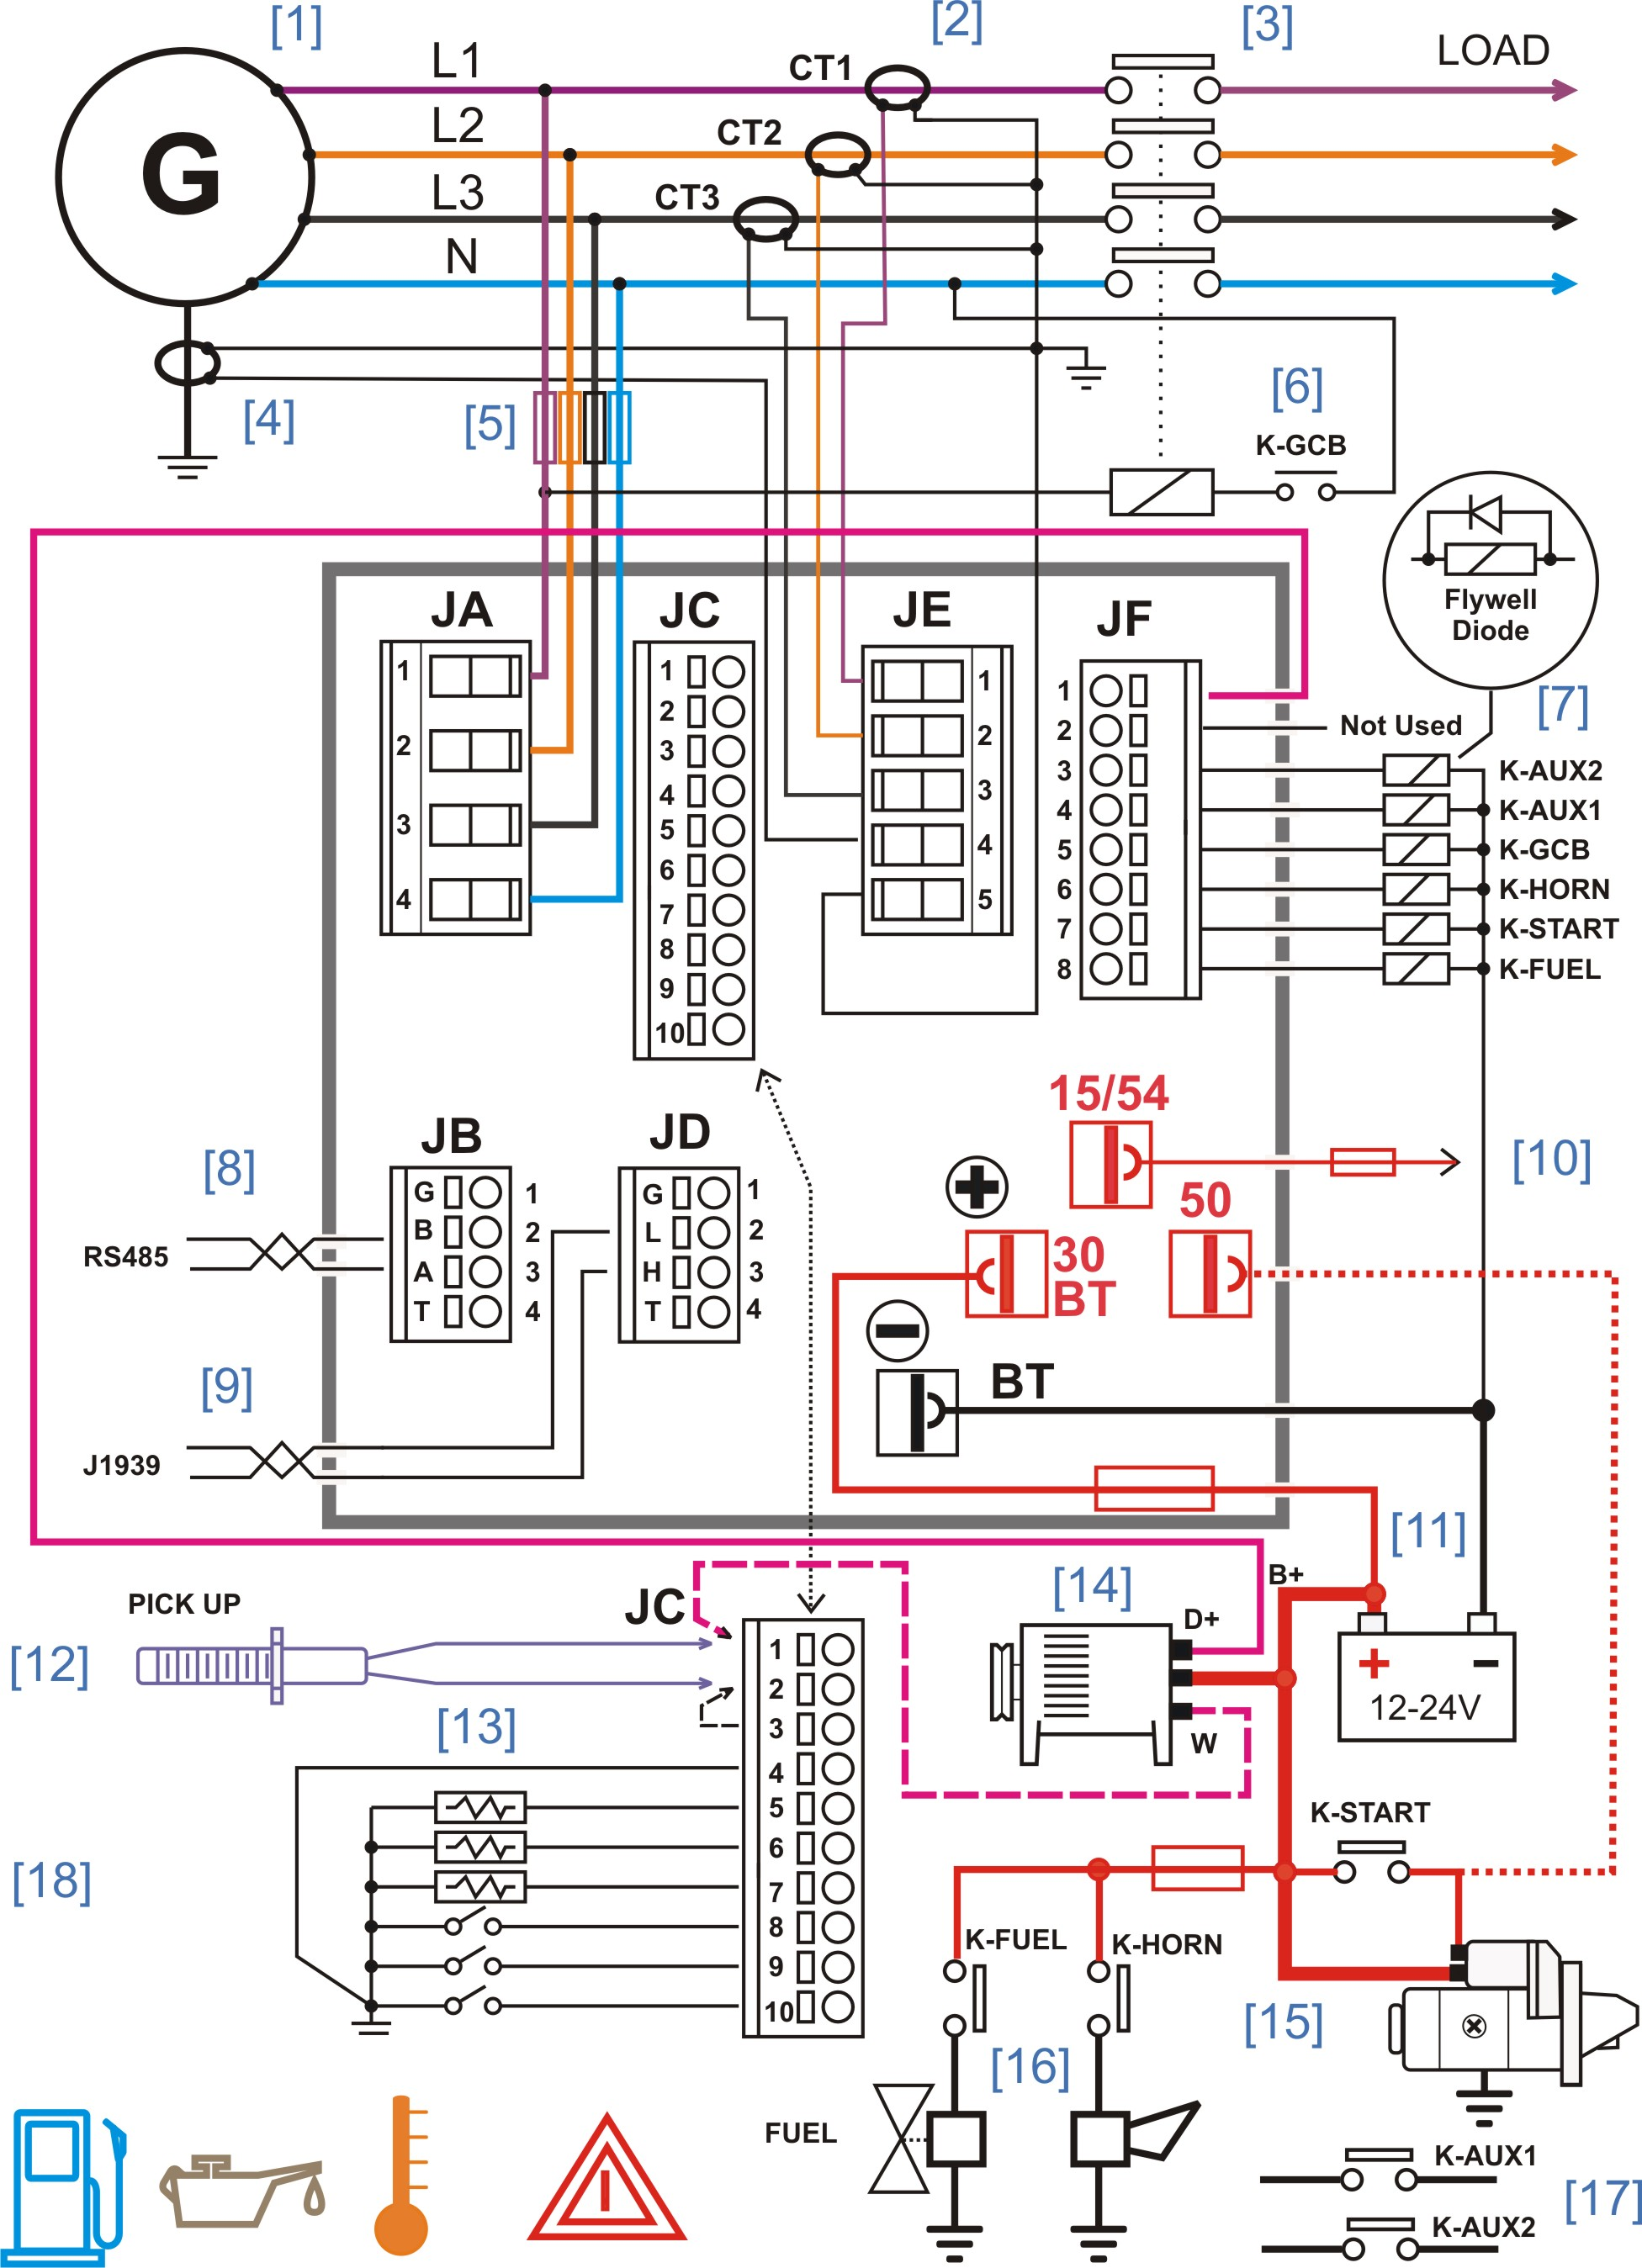 Diesel Generator Control Panel Wiring Diagram?quality\\\=80\\\&strip\\\=all gm wiring diagrams online on gm download wirning diagrams  at cos-gaming.co